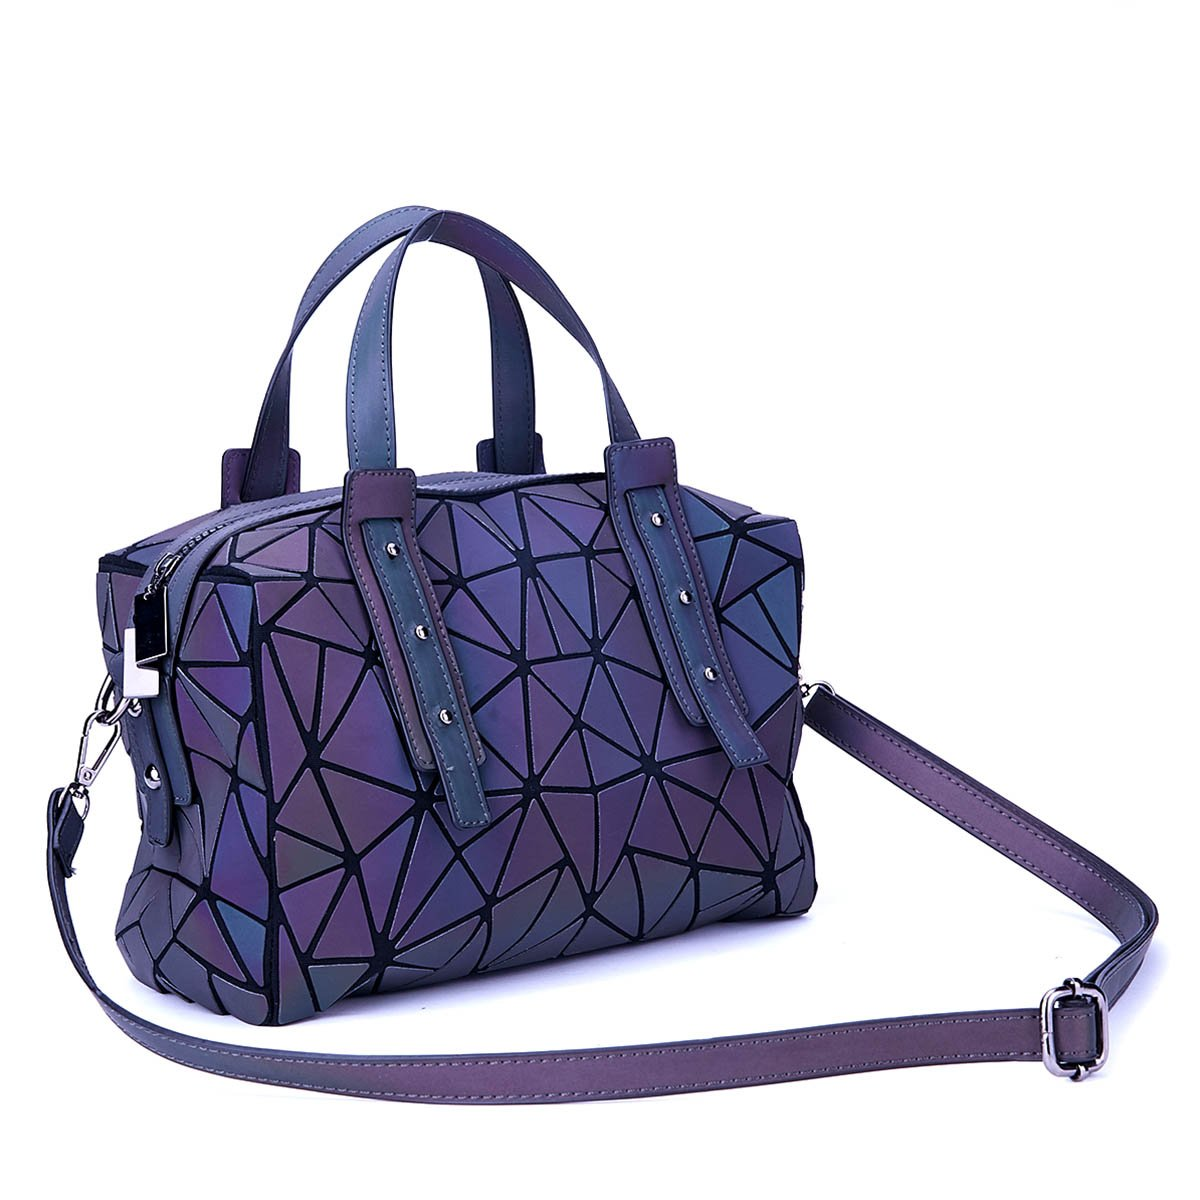 Harlermoon Geometric Luminous Holographic Purses and Handbags Flash Reflactive Tote for Women … (Boston handbag)